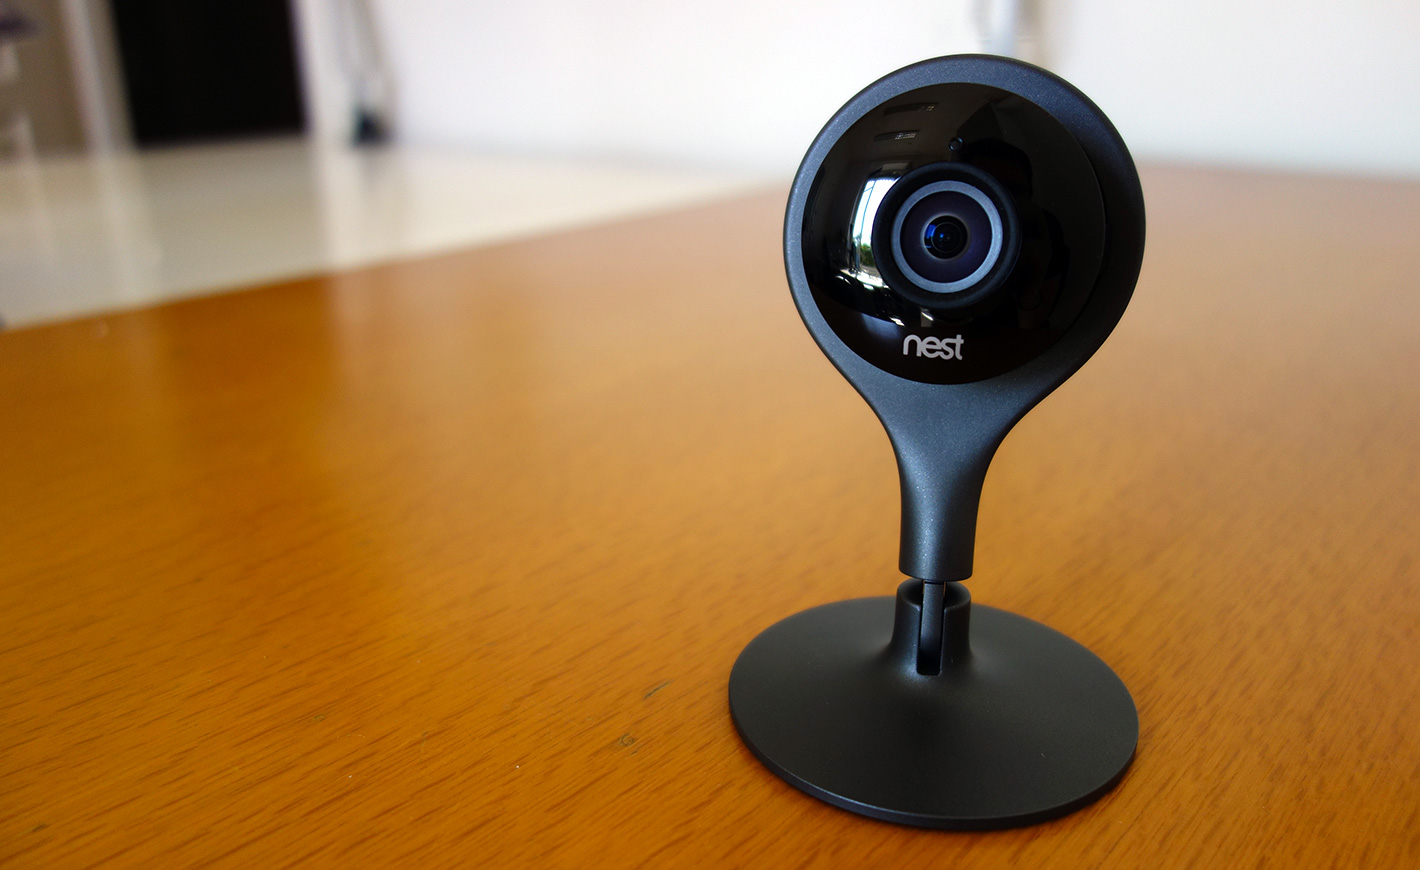 test de la nest cam une cam ra de surveillance connect e. Black Bedroom Furniture Sets. Home Design Ideas